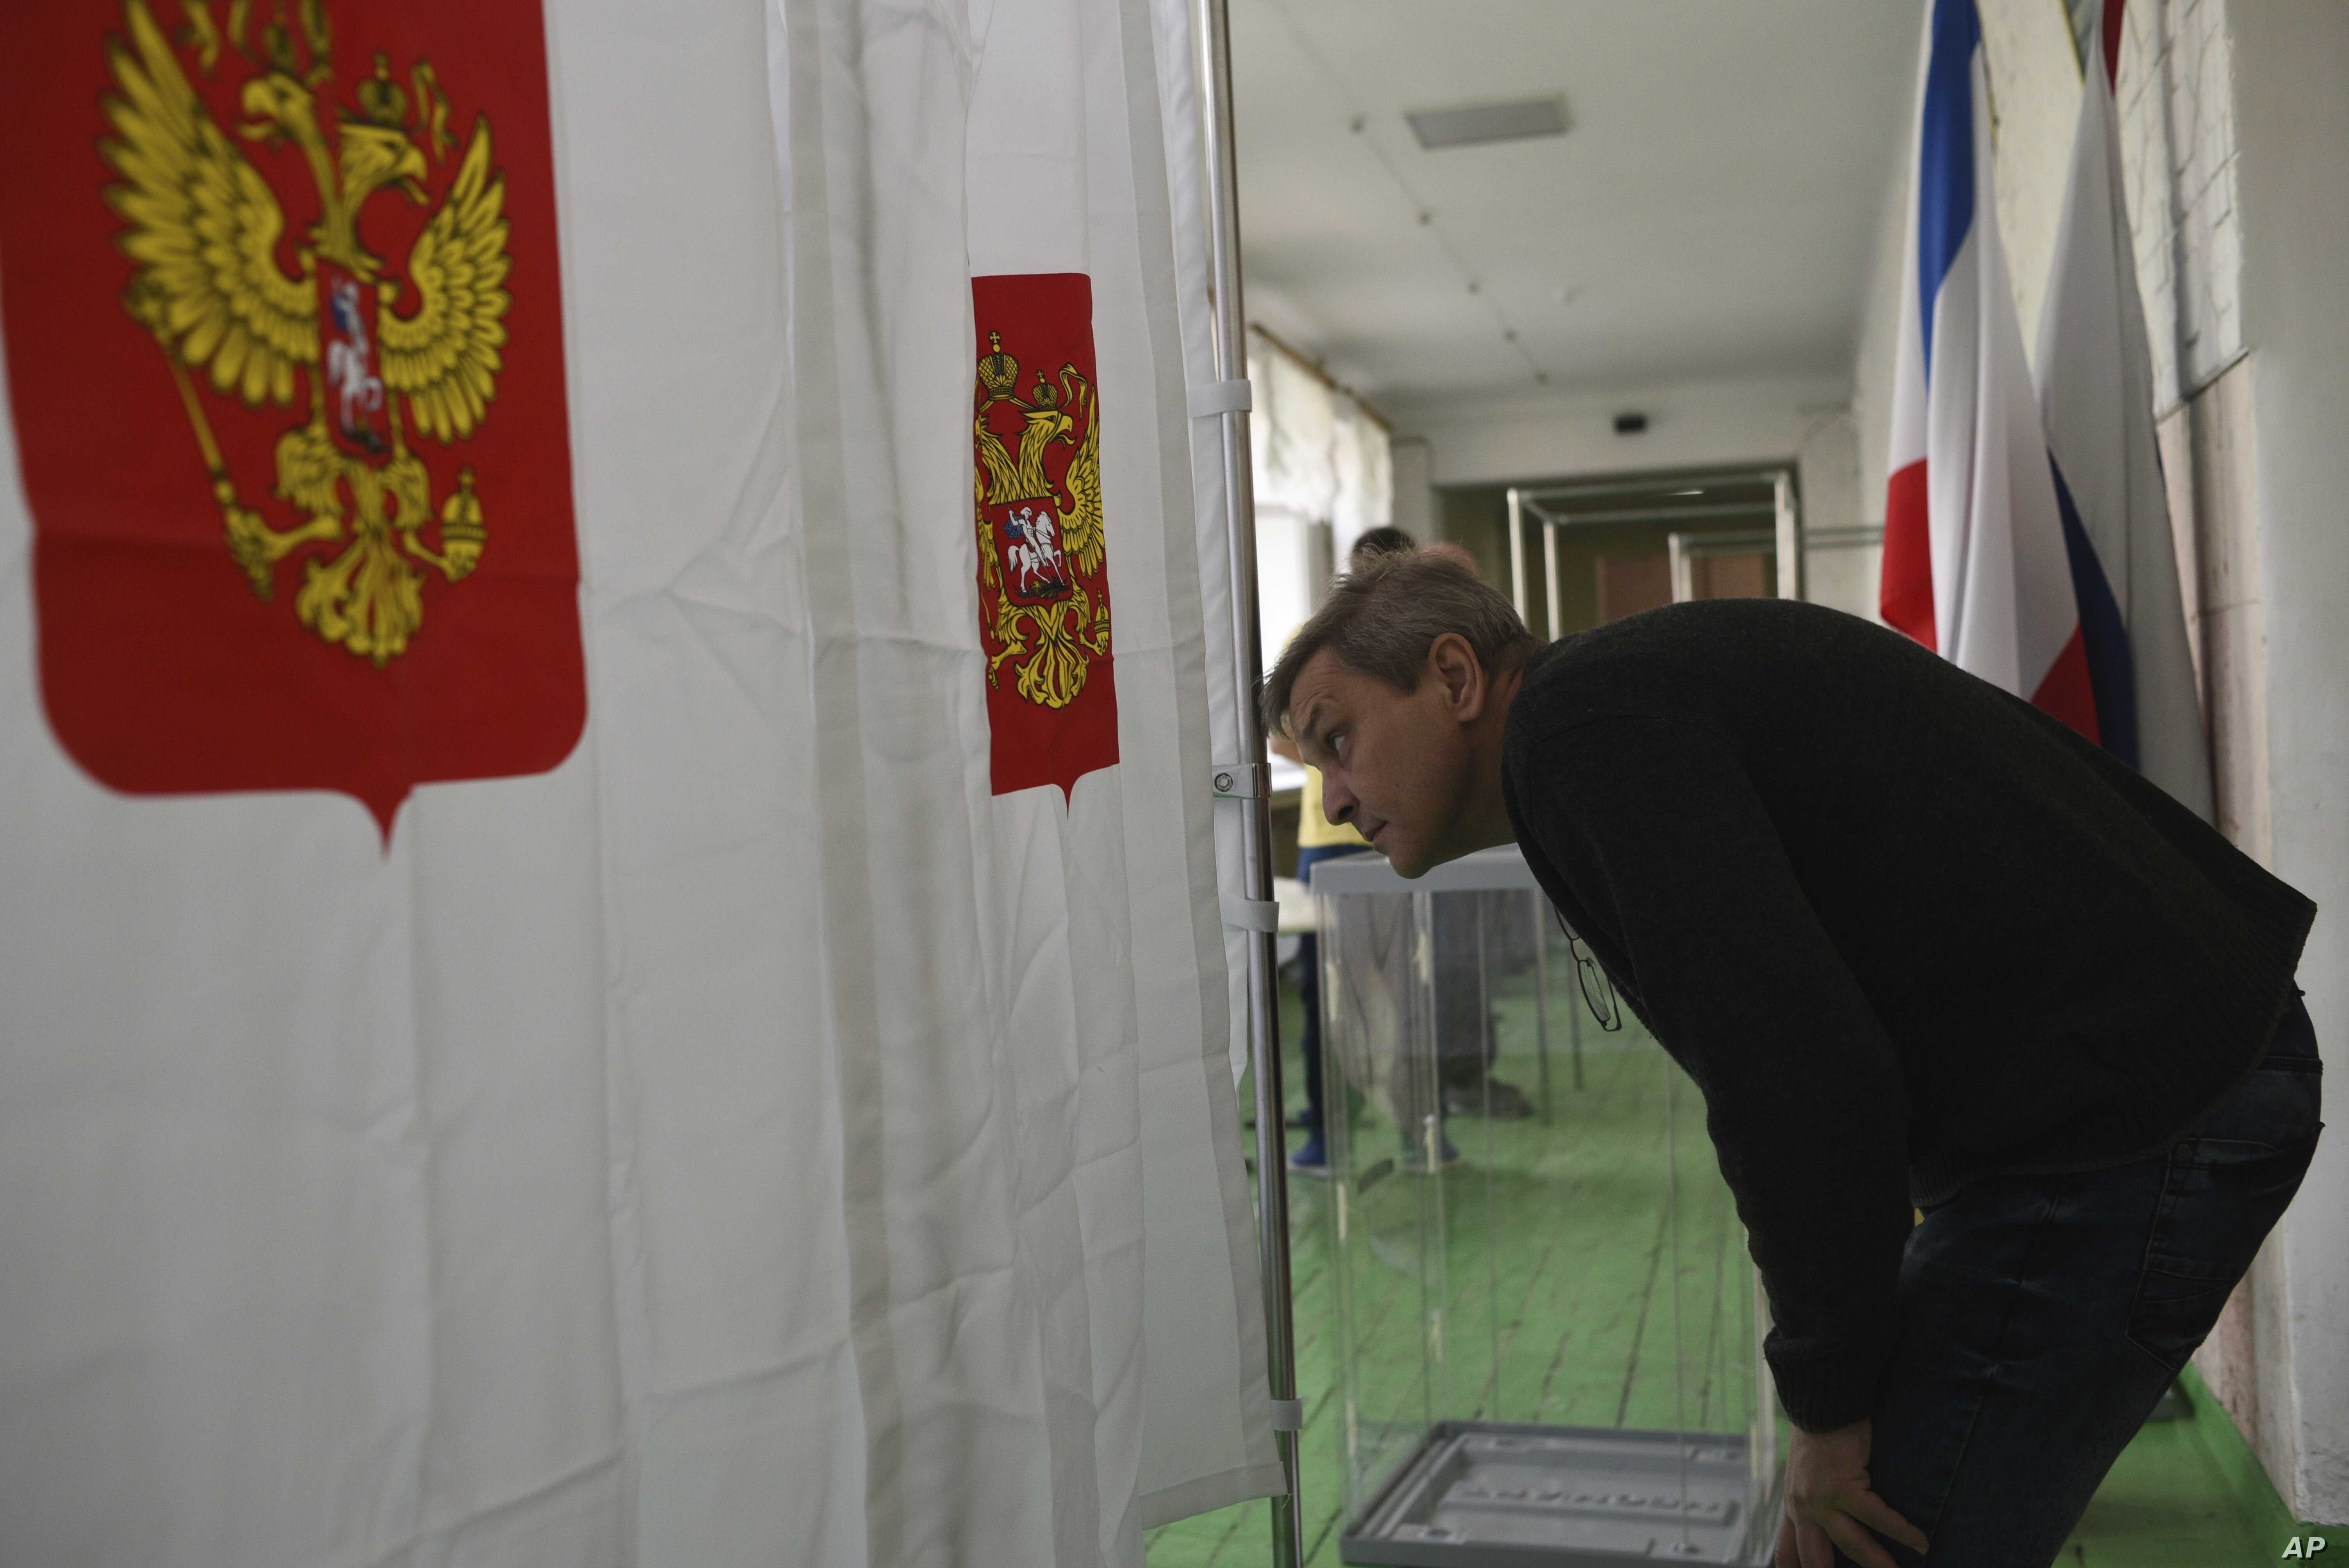 A polling station official checks vote cabins for the 2018 Russian presidential election in Simferopol, Crimea, March 17, 2018.